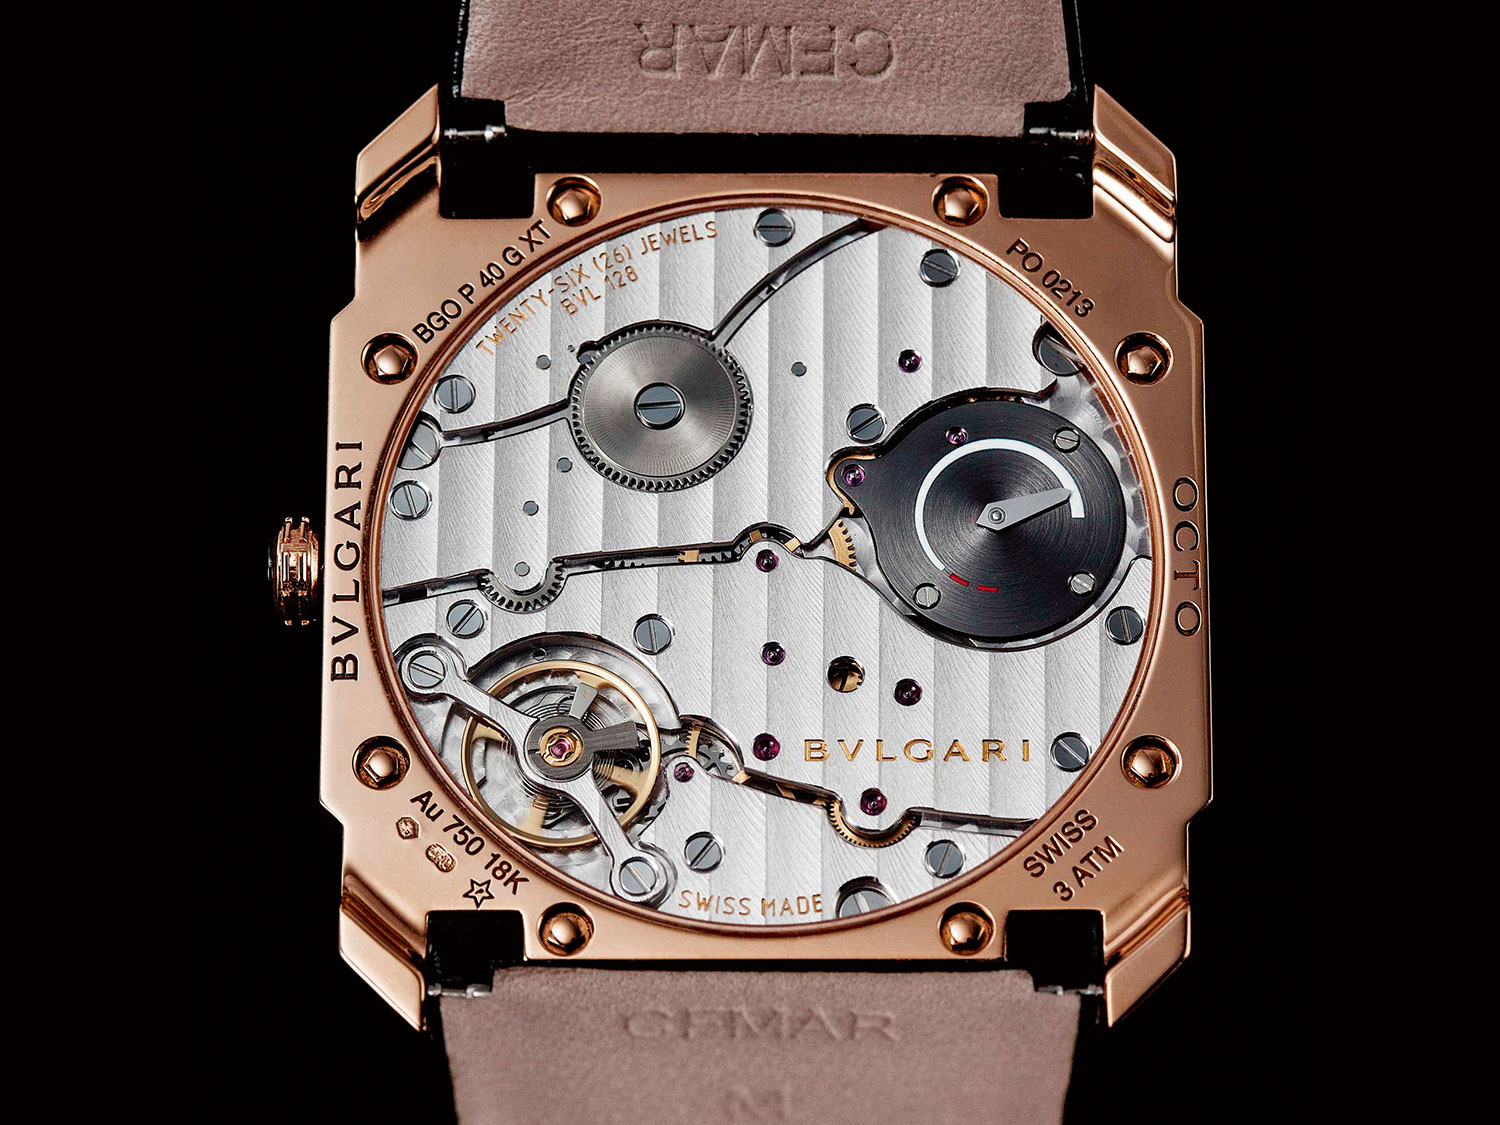 The escapement of the BVL 128 is supported with a balance bridge that's screwed down on both sides, rather than a balance cock, which improves the ultra-thin movement's shock resistance; the barrel bridge doubles as a power reserve display (Image © Revolution)